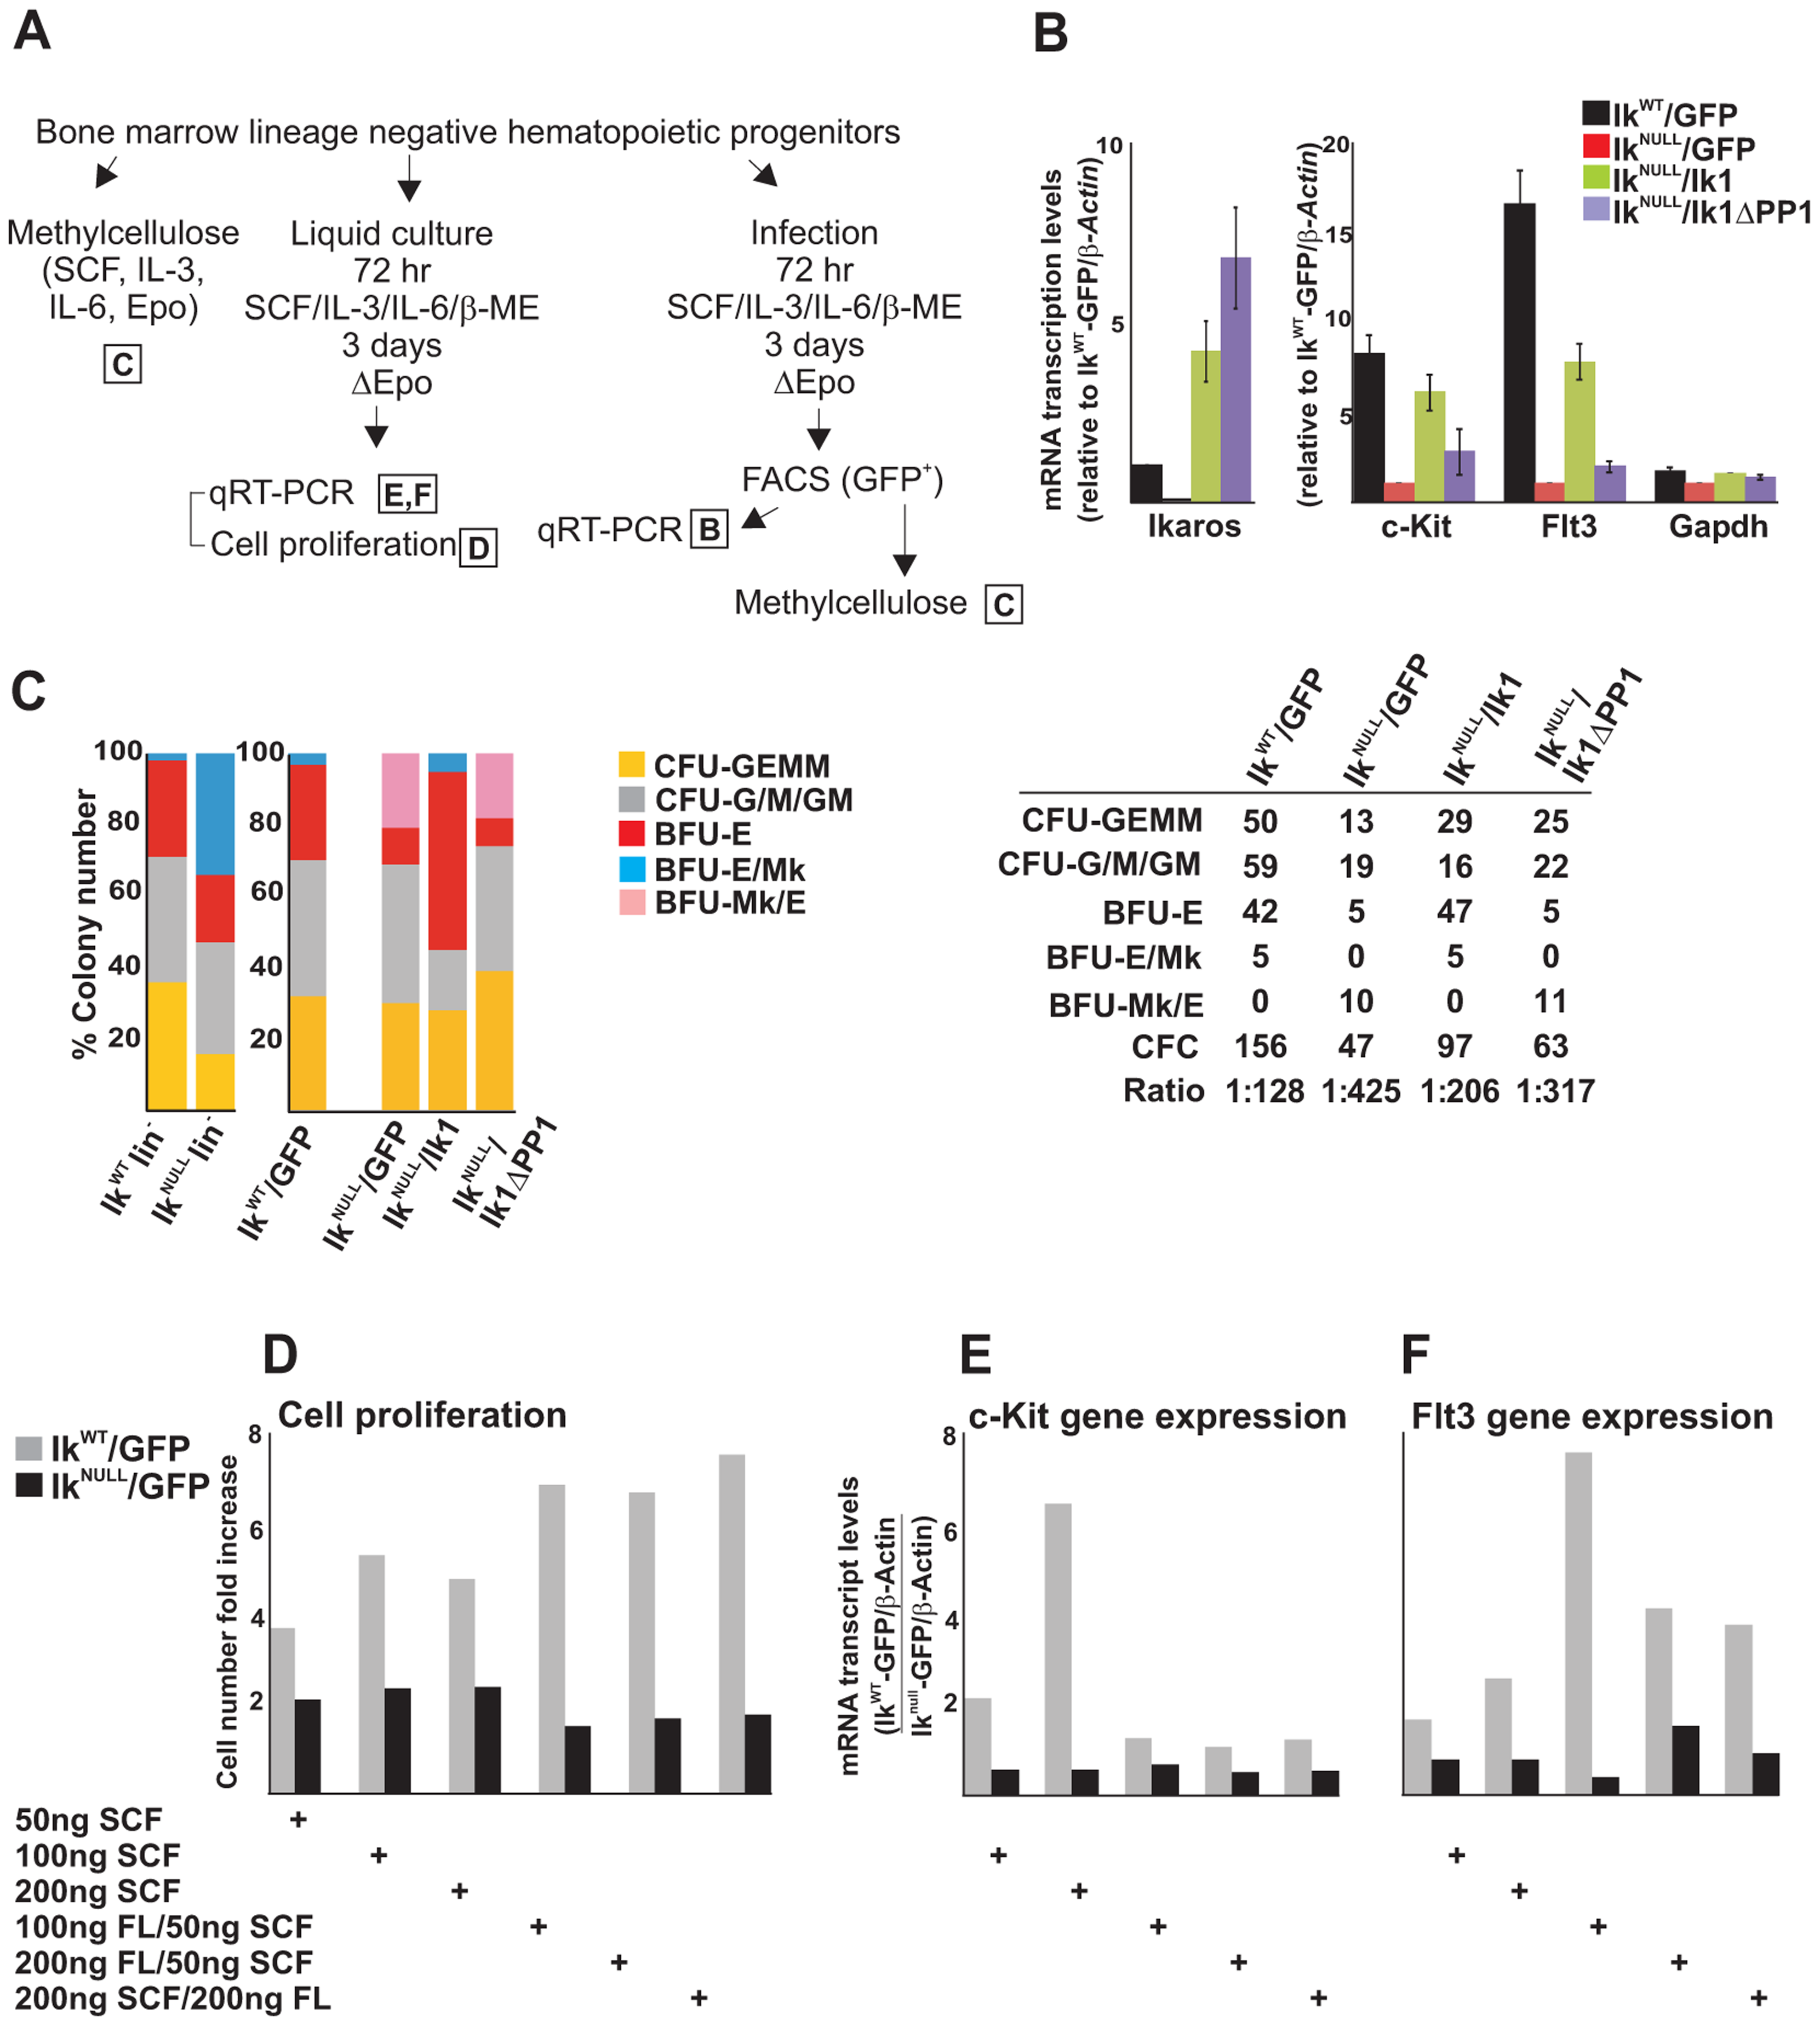 The IKAROS-PP1 interaction is required for normal hematopoietic differentiation.